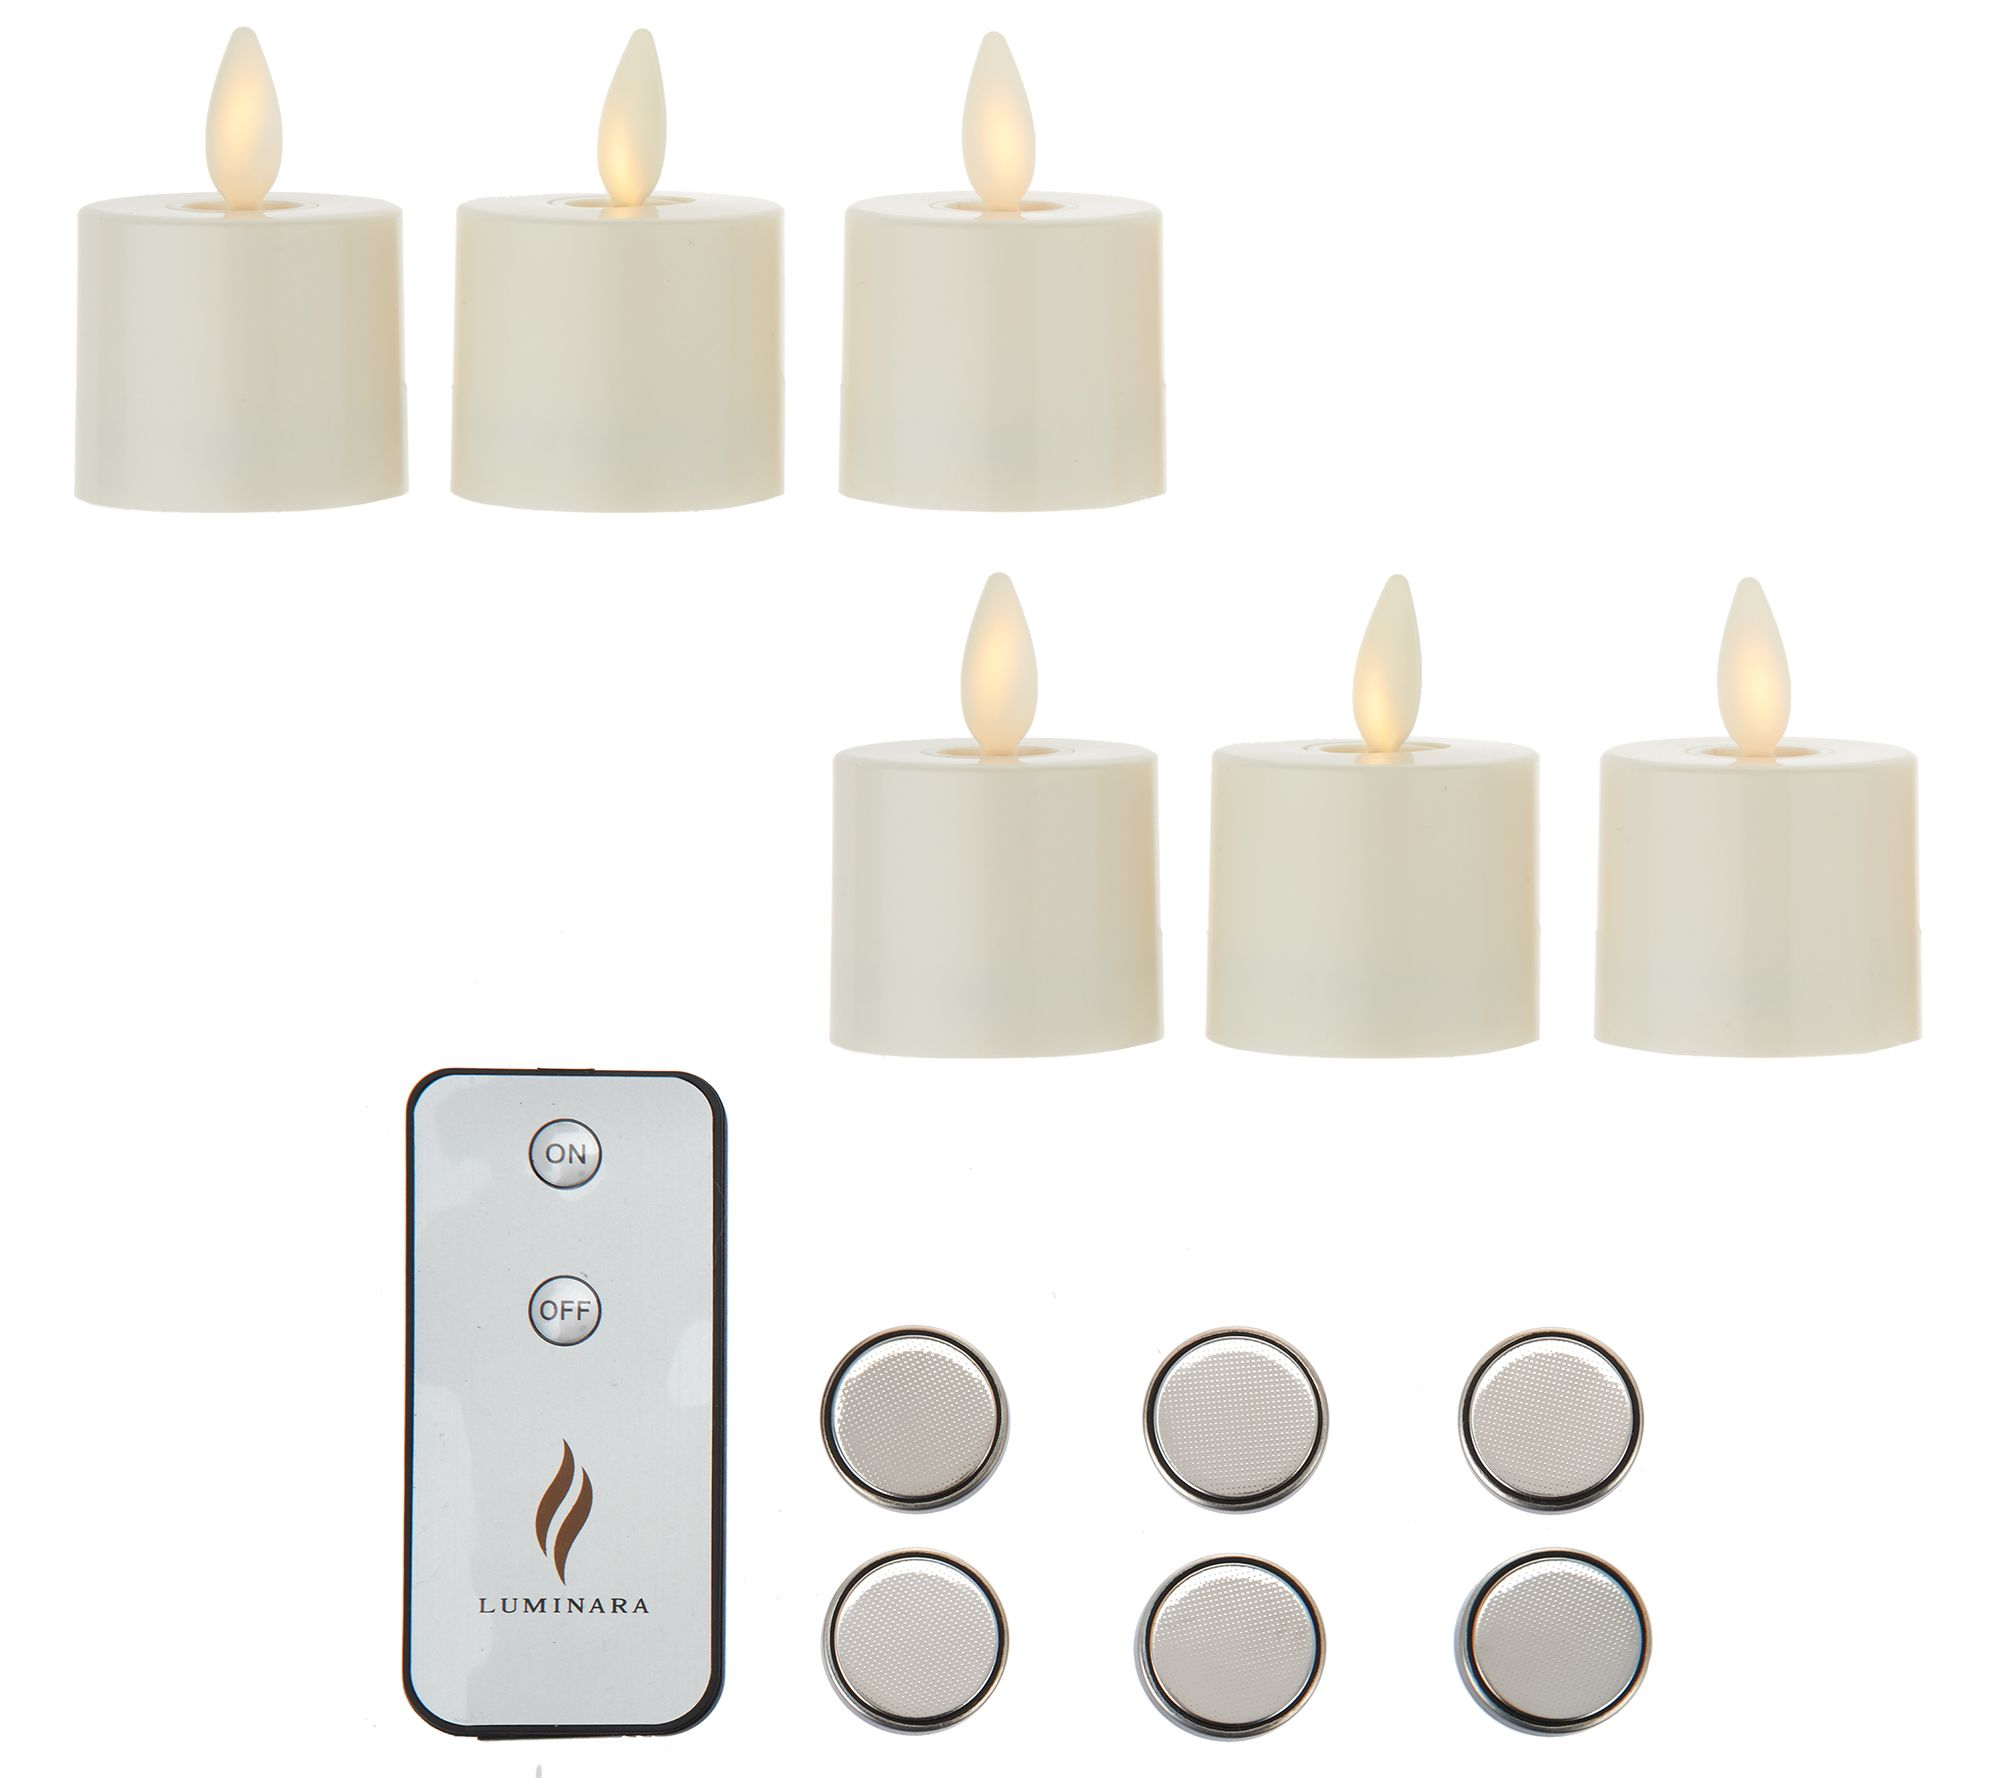 Luminara Set of 6 Tealights with Additional Batteries - Page 1  QVC.com